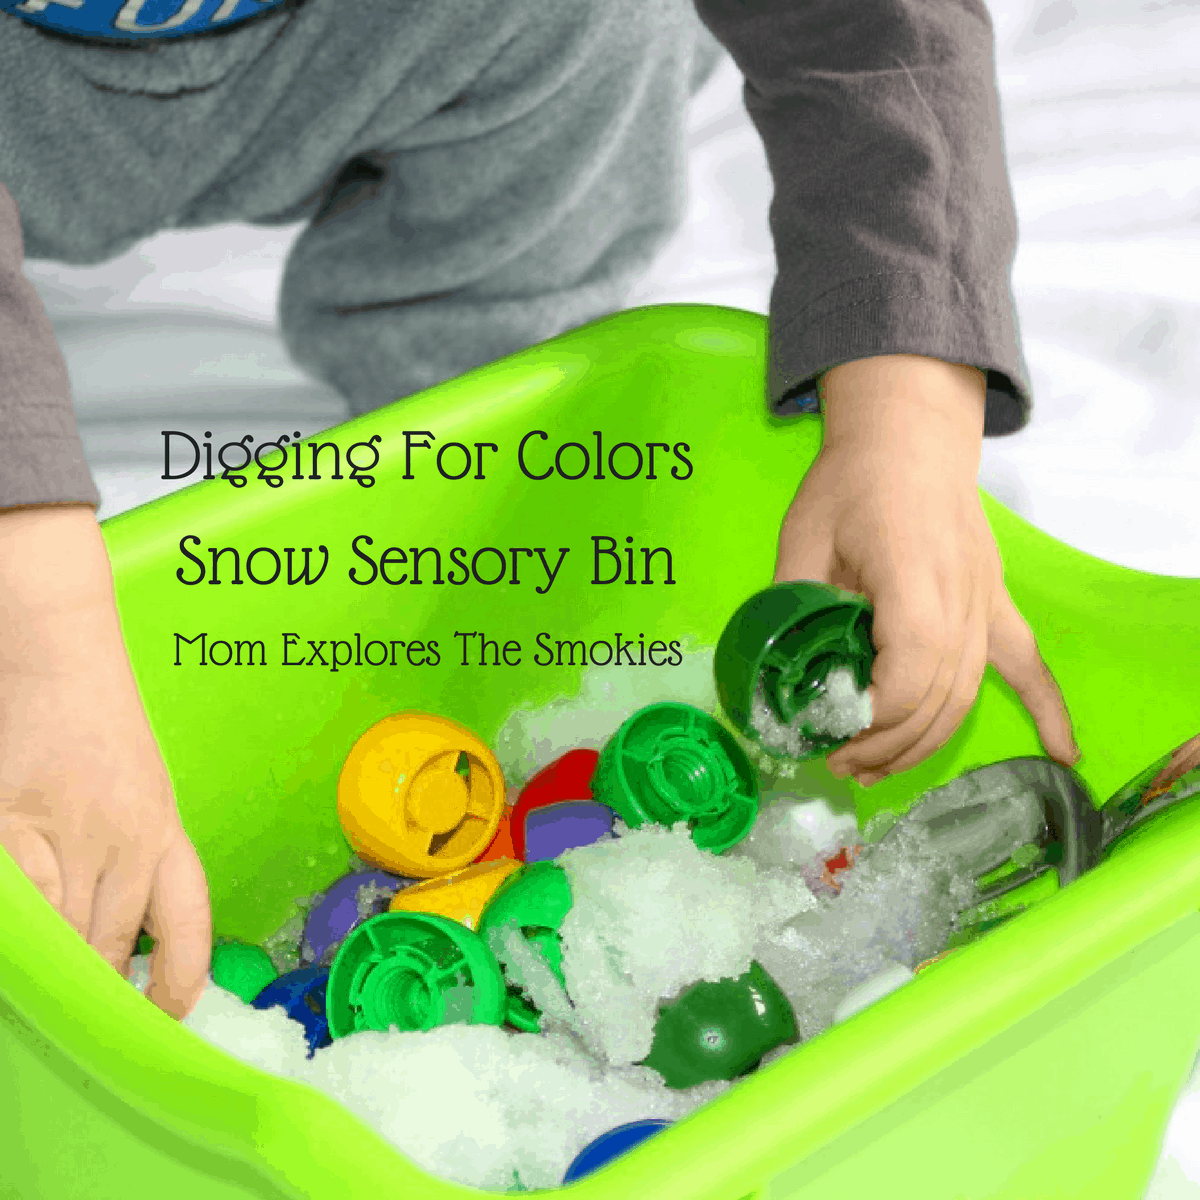 Digging for Colors: Snow Sensory Bin, Mom Explores The Smokies